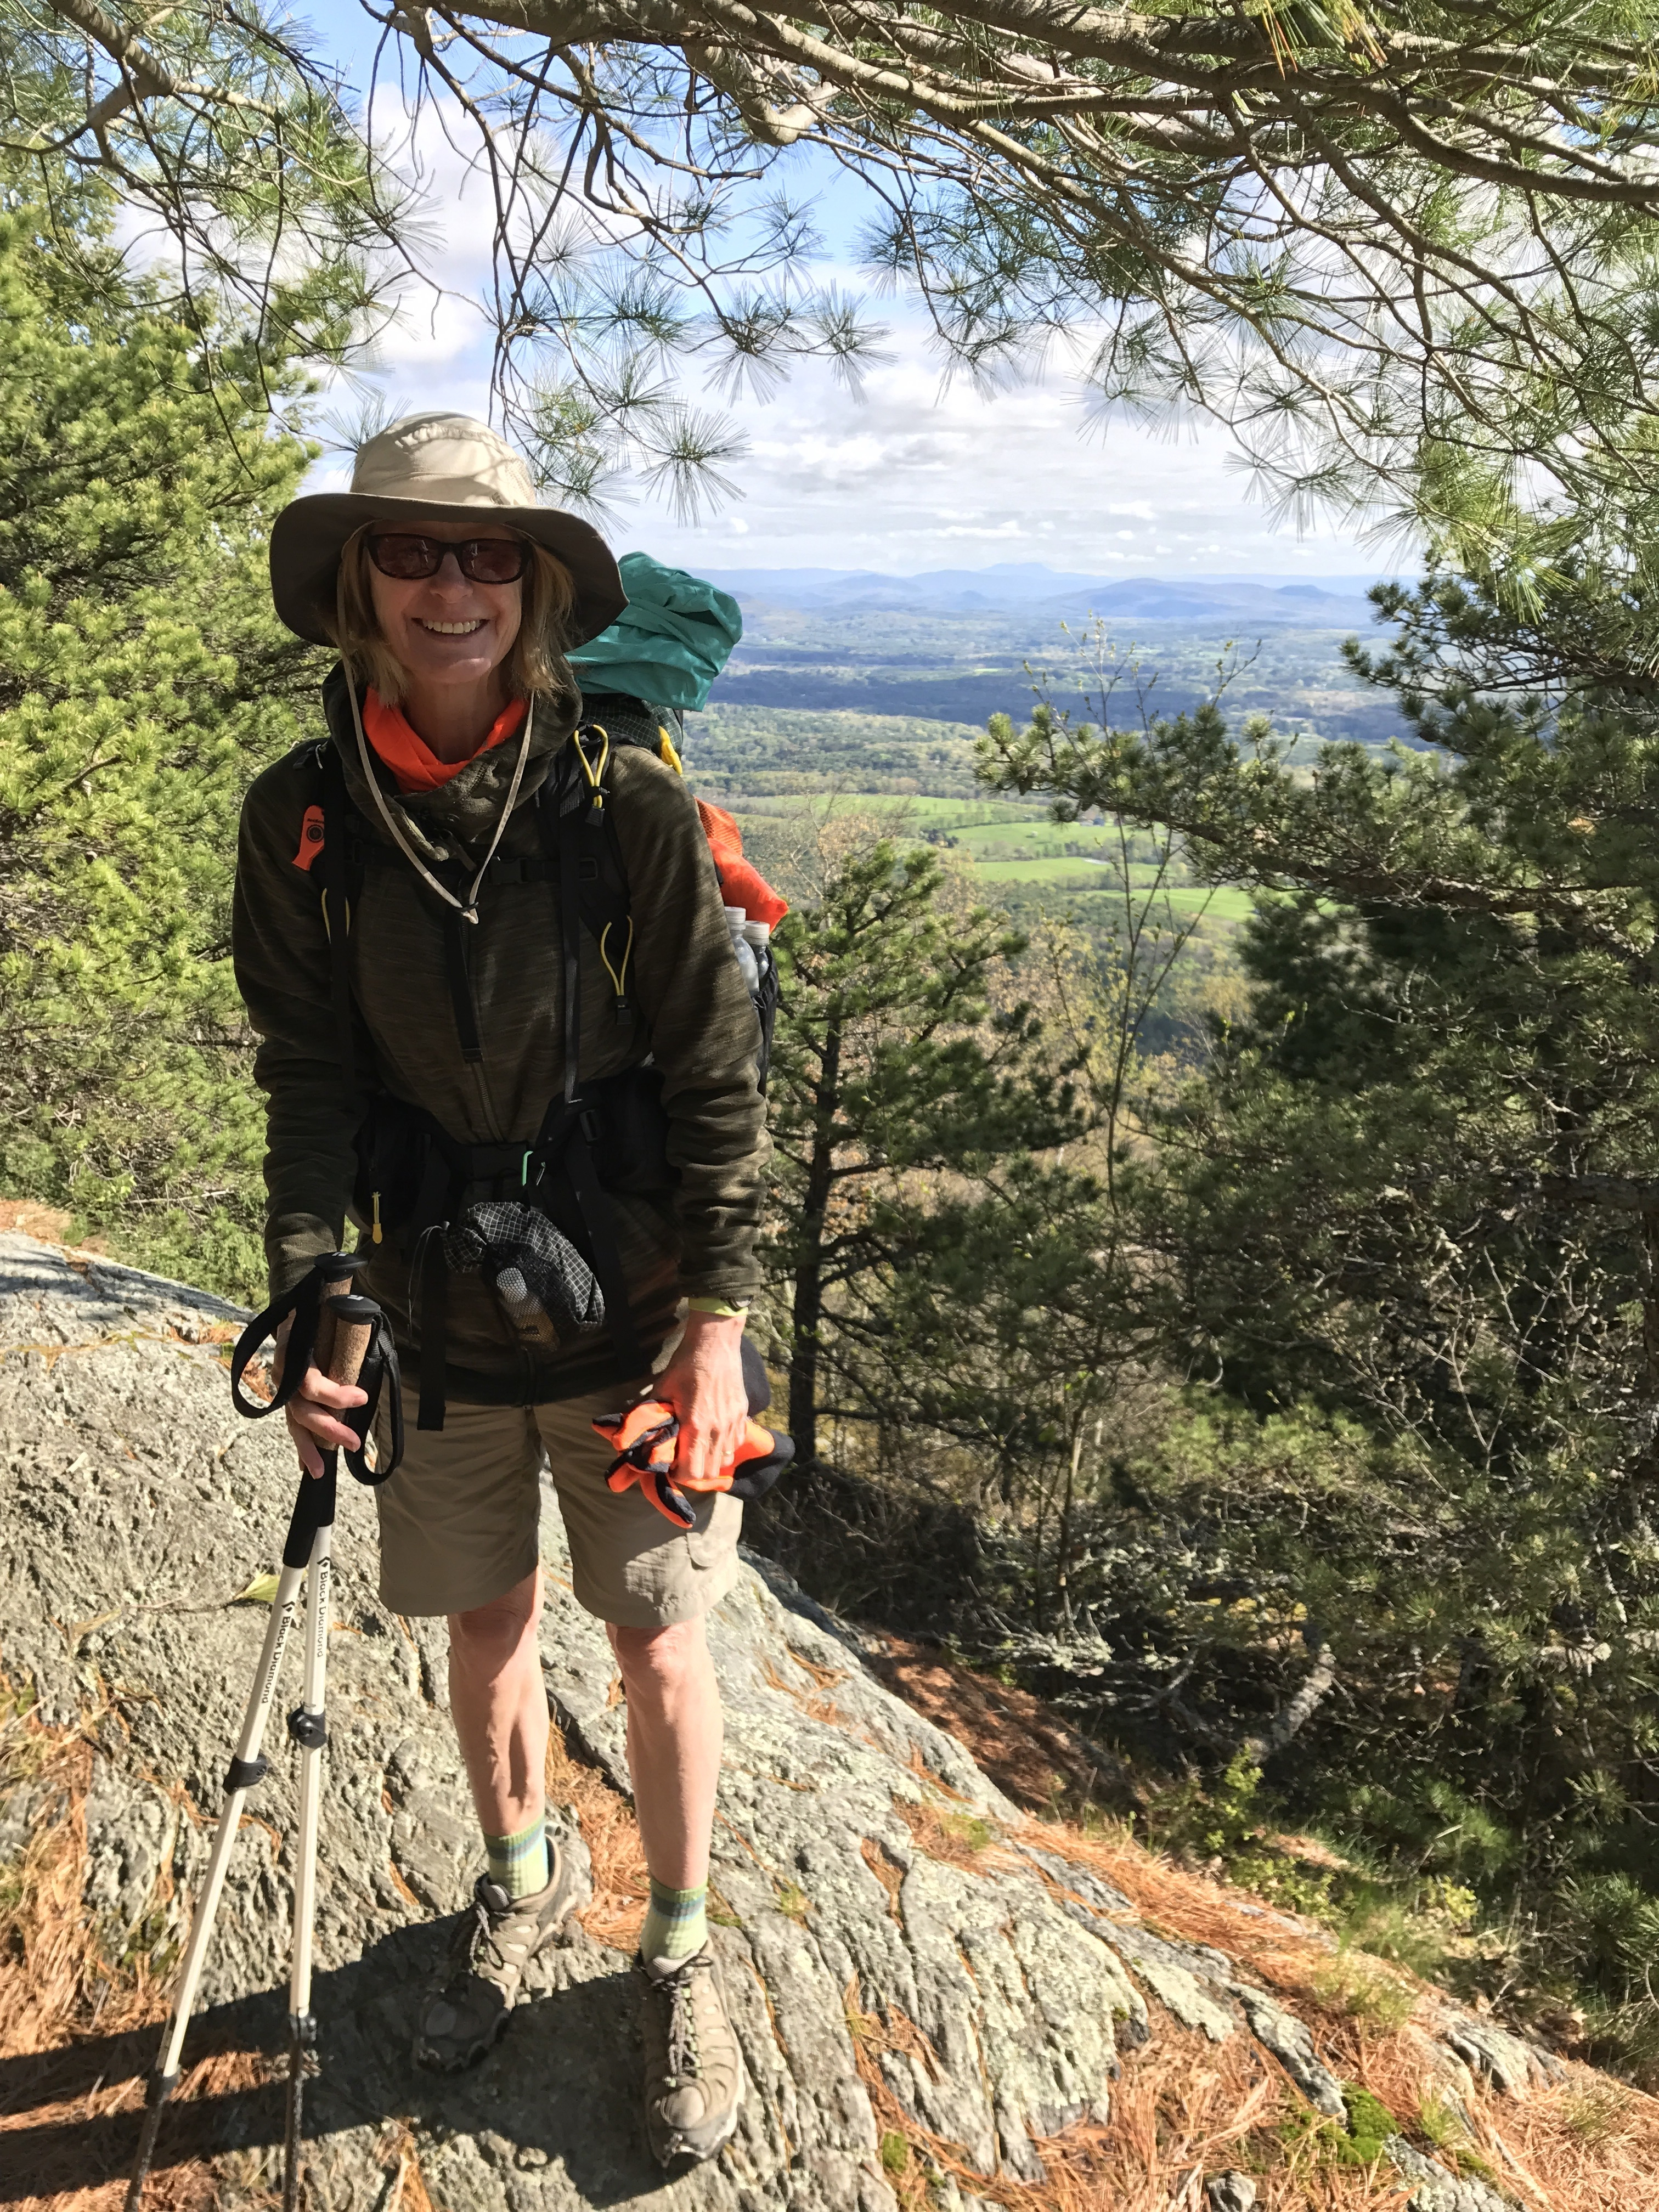 Hiking the Appalachian Trail at Age 63